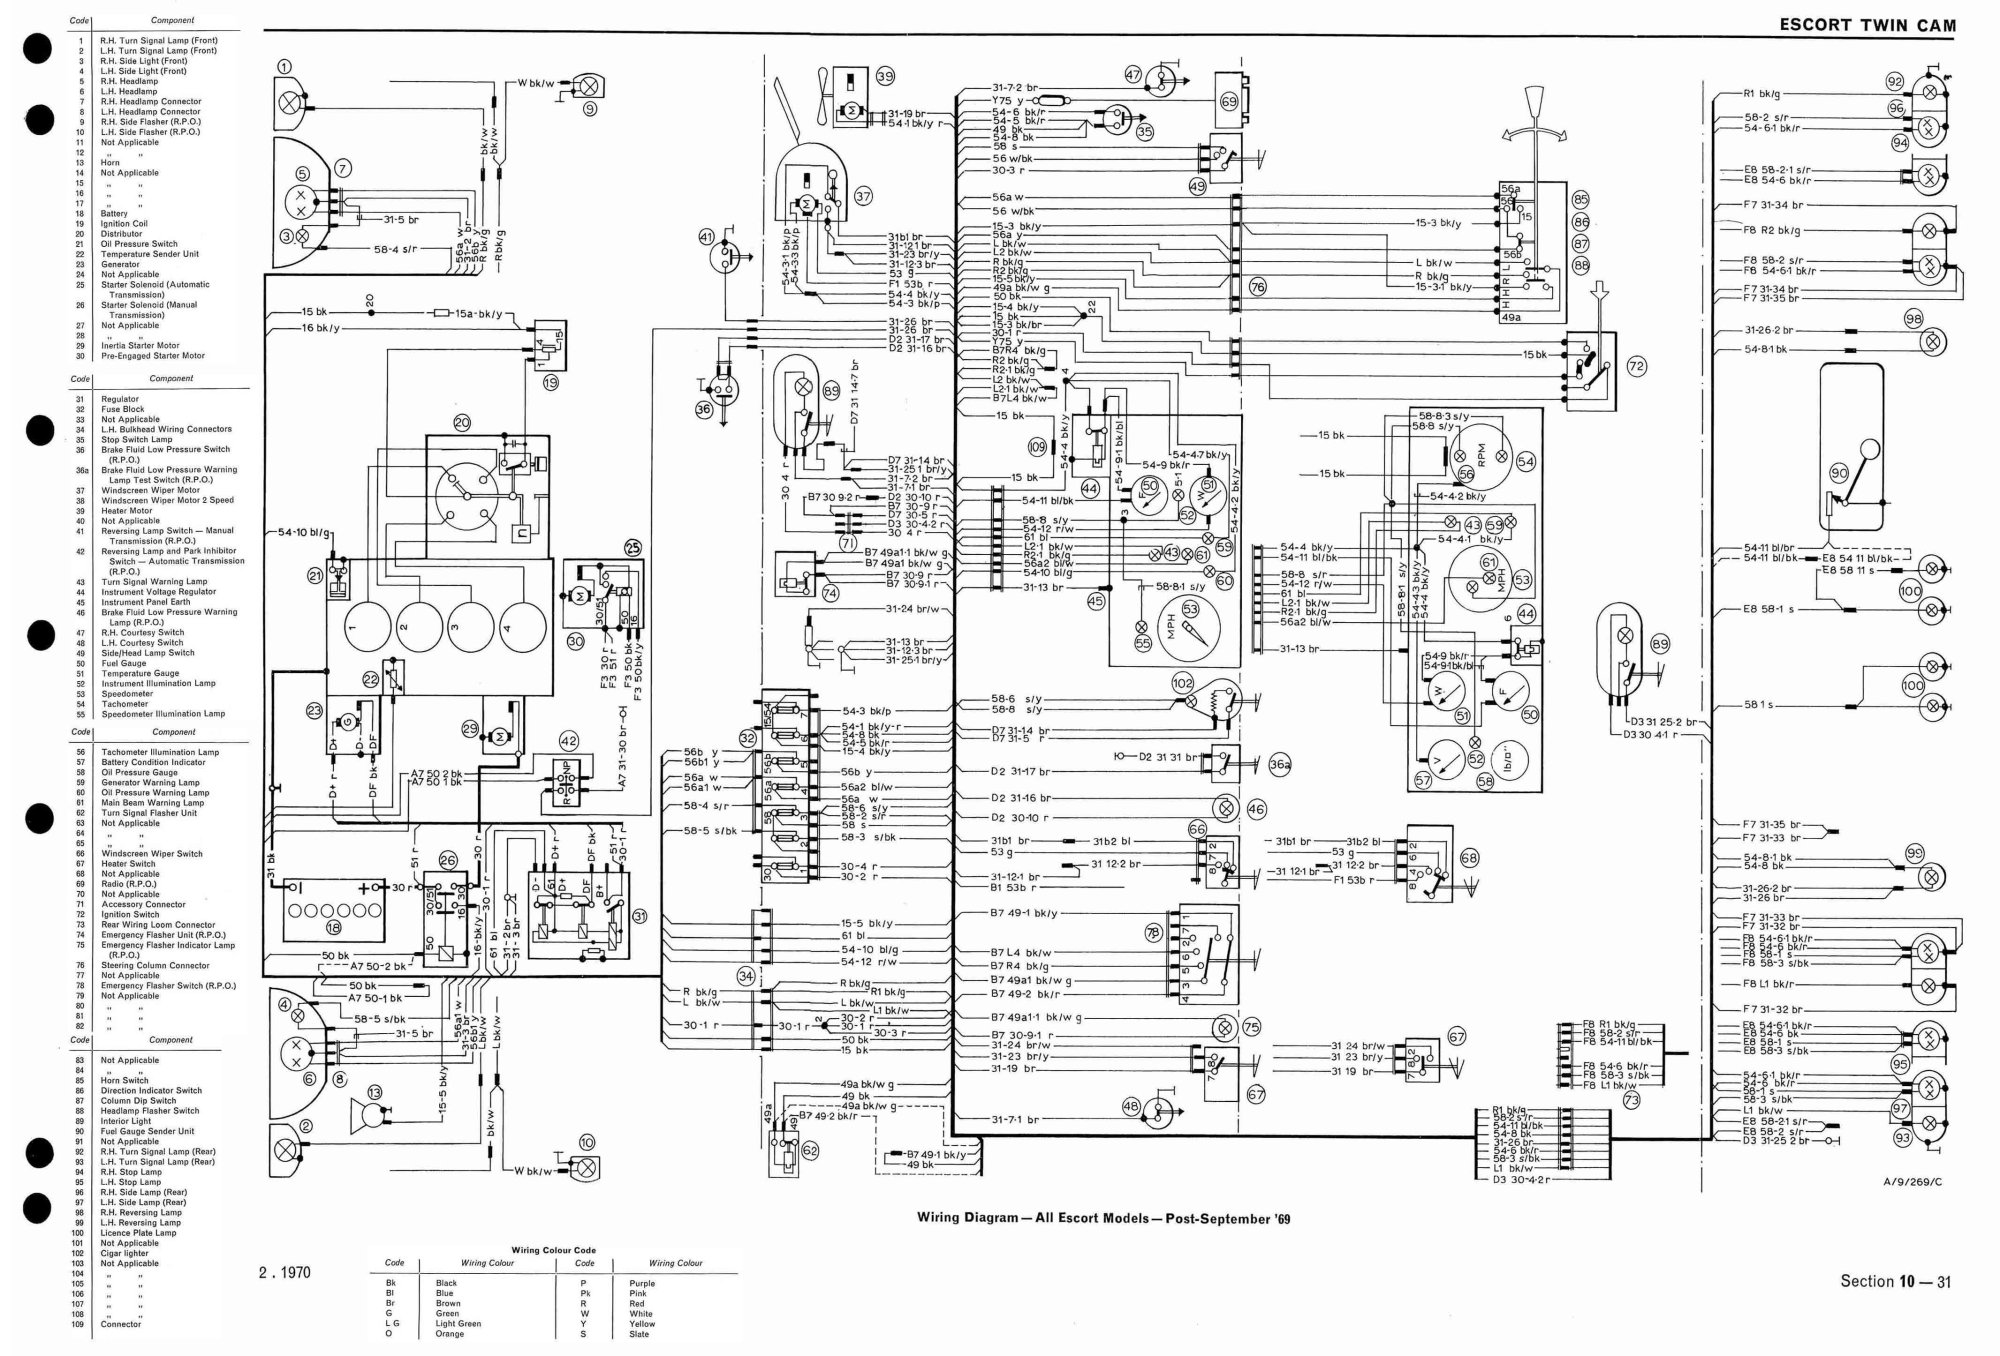 hight resolution of wiring diagram for mk1 escorts mk1 mk2 escorts old skool ford ford escort mk1 fuse box diagram escort mk1 fuse box diagram